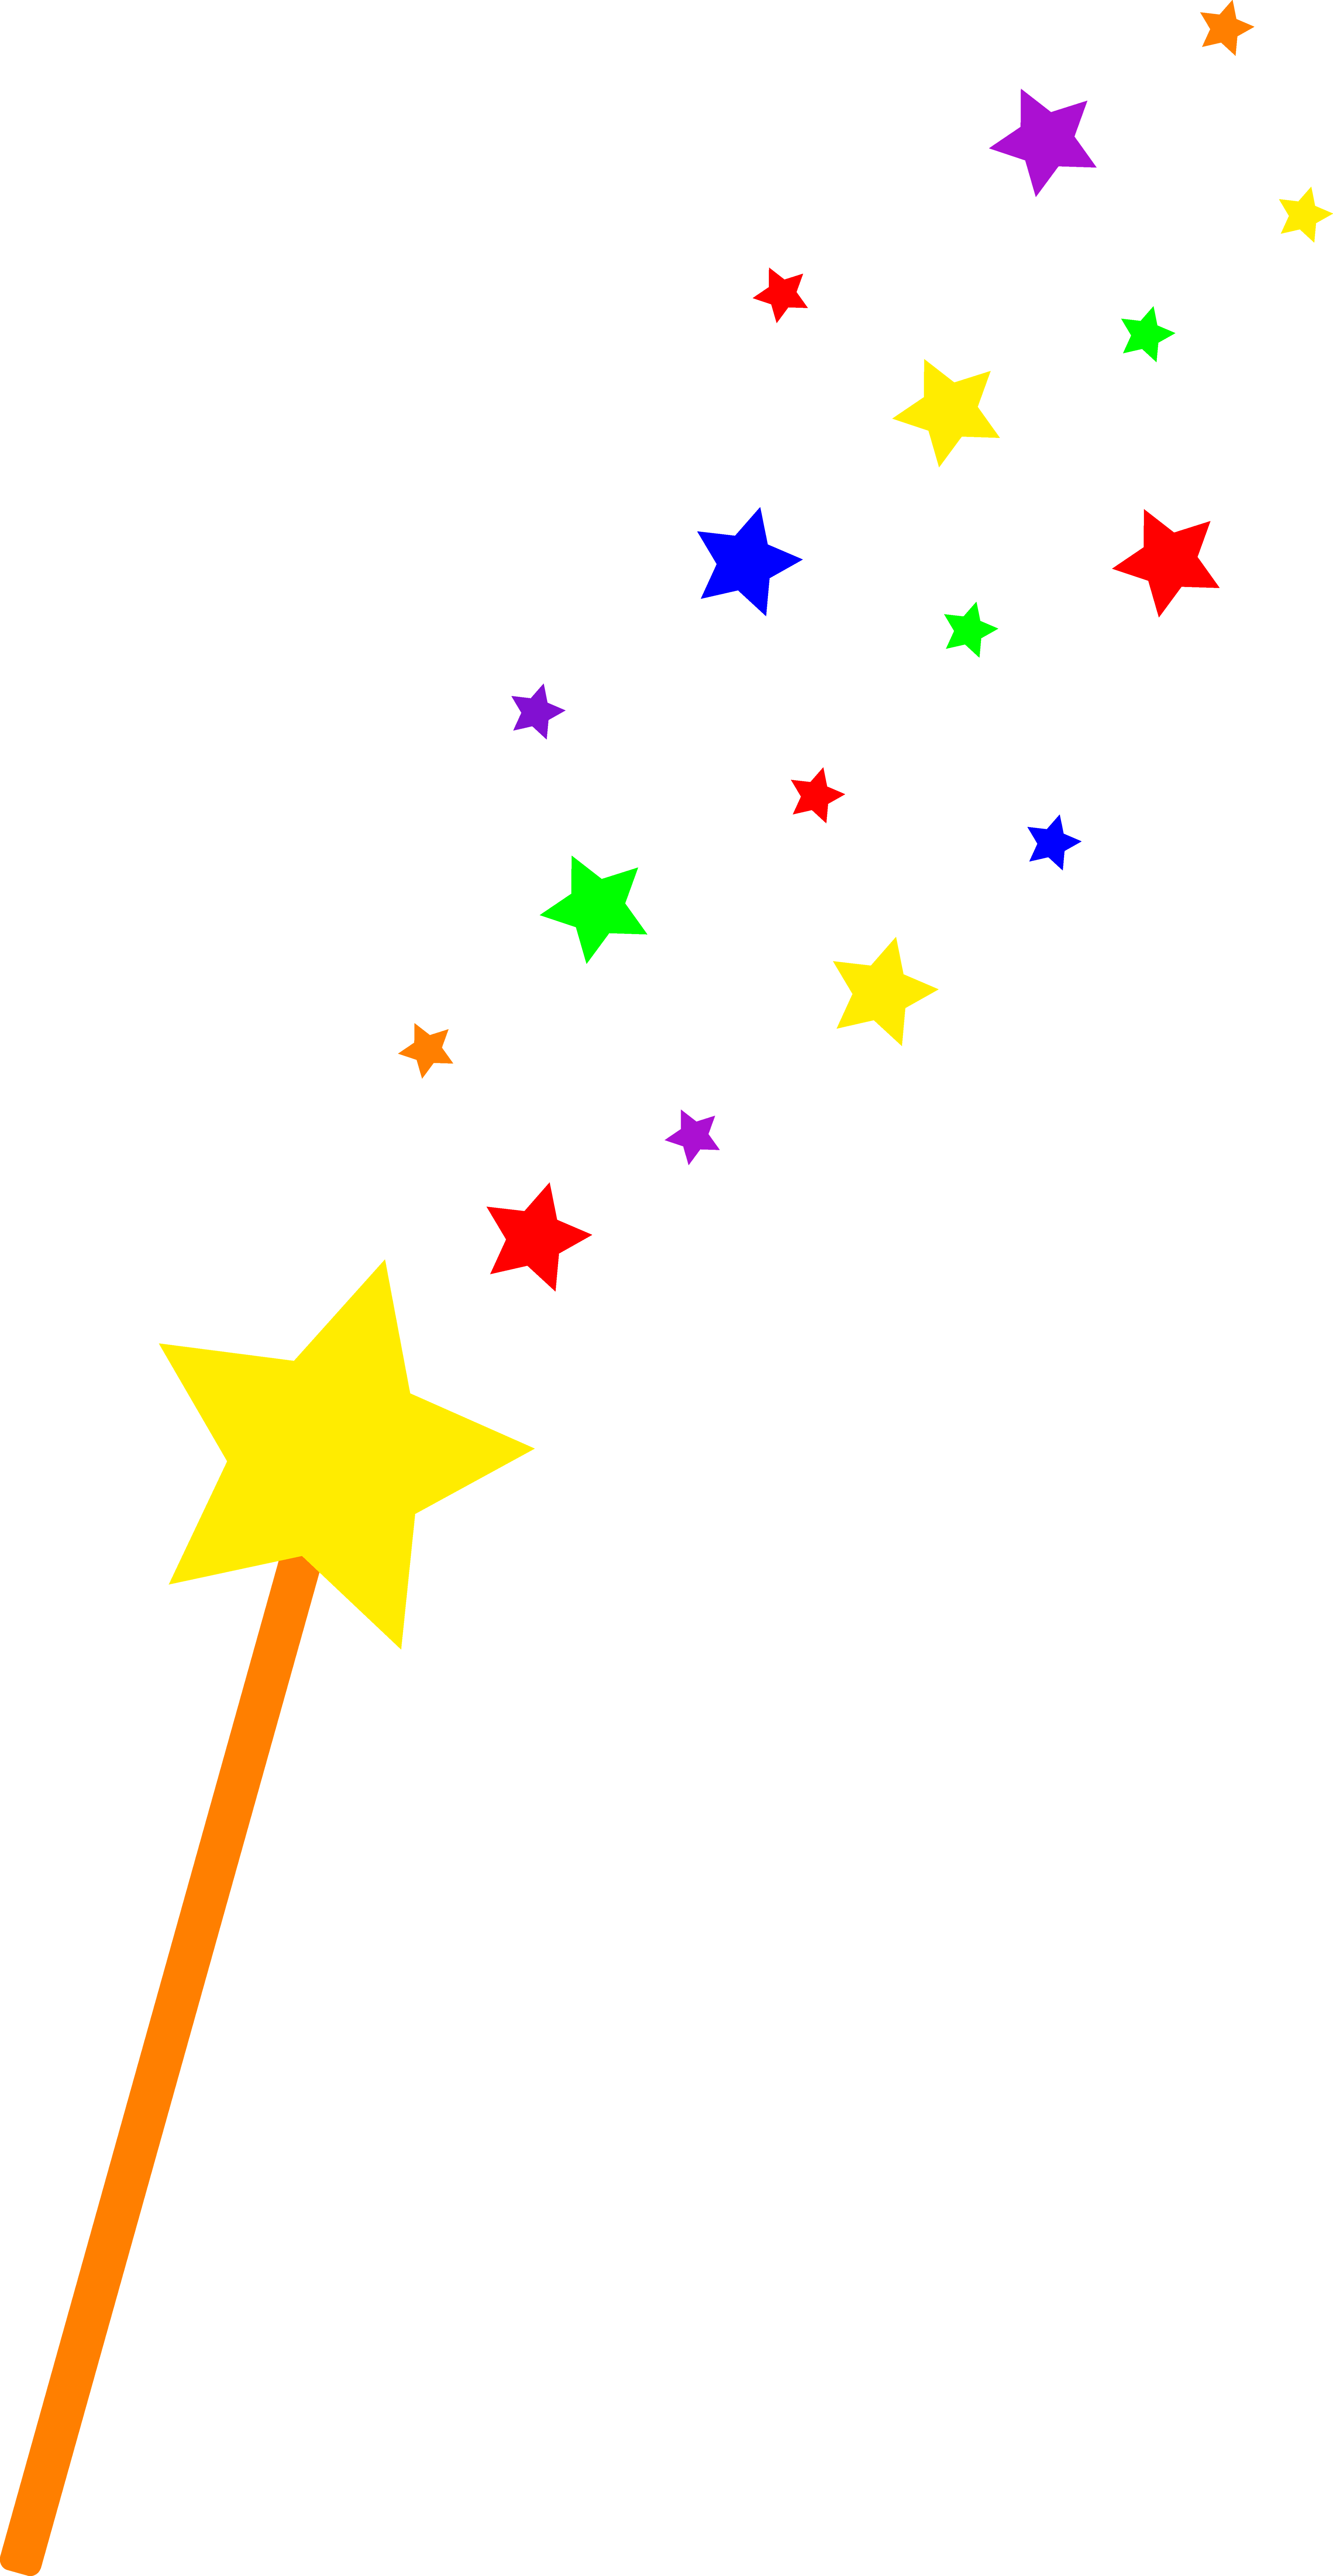 Magical clipart #1, Download drawings